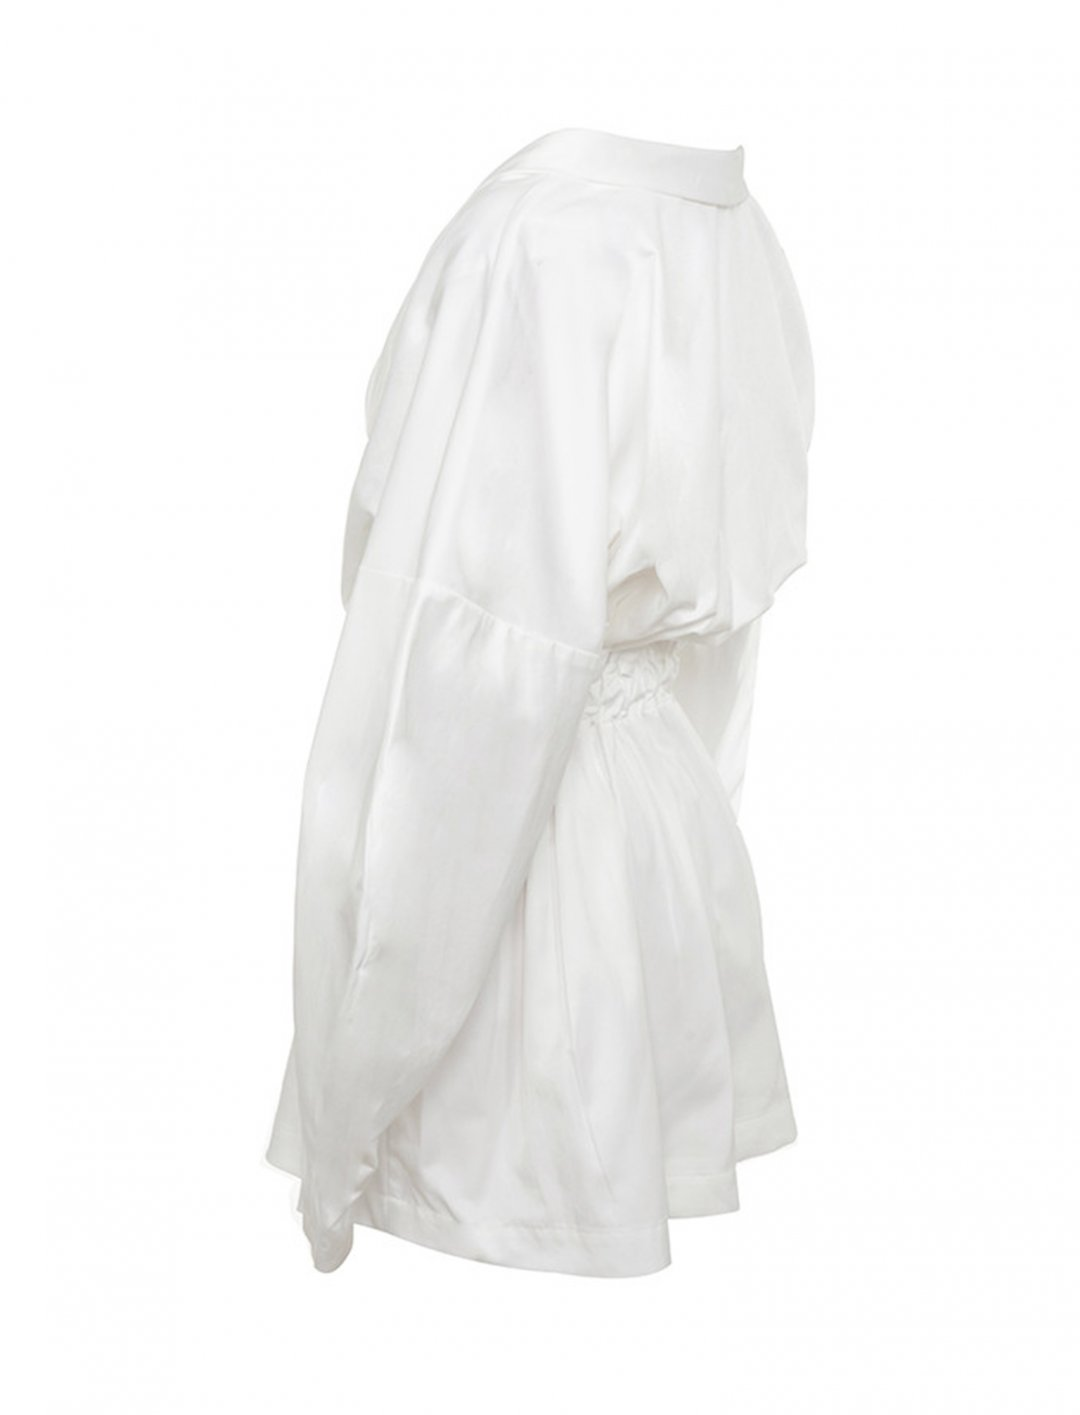 "Imani's Oversized Shirt Dress {""id"":5,""product_section_id"":1,""name"":""Clothing"",""order"":5} House Of CB"